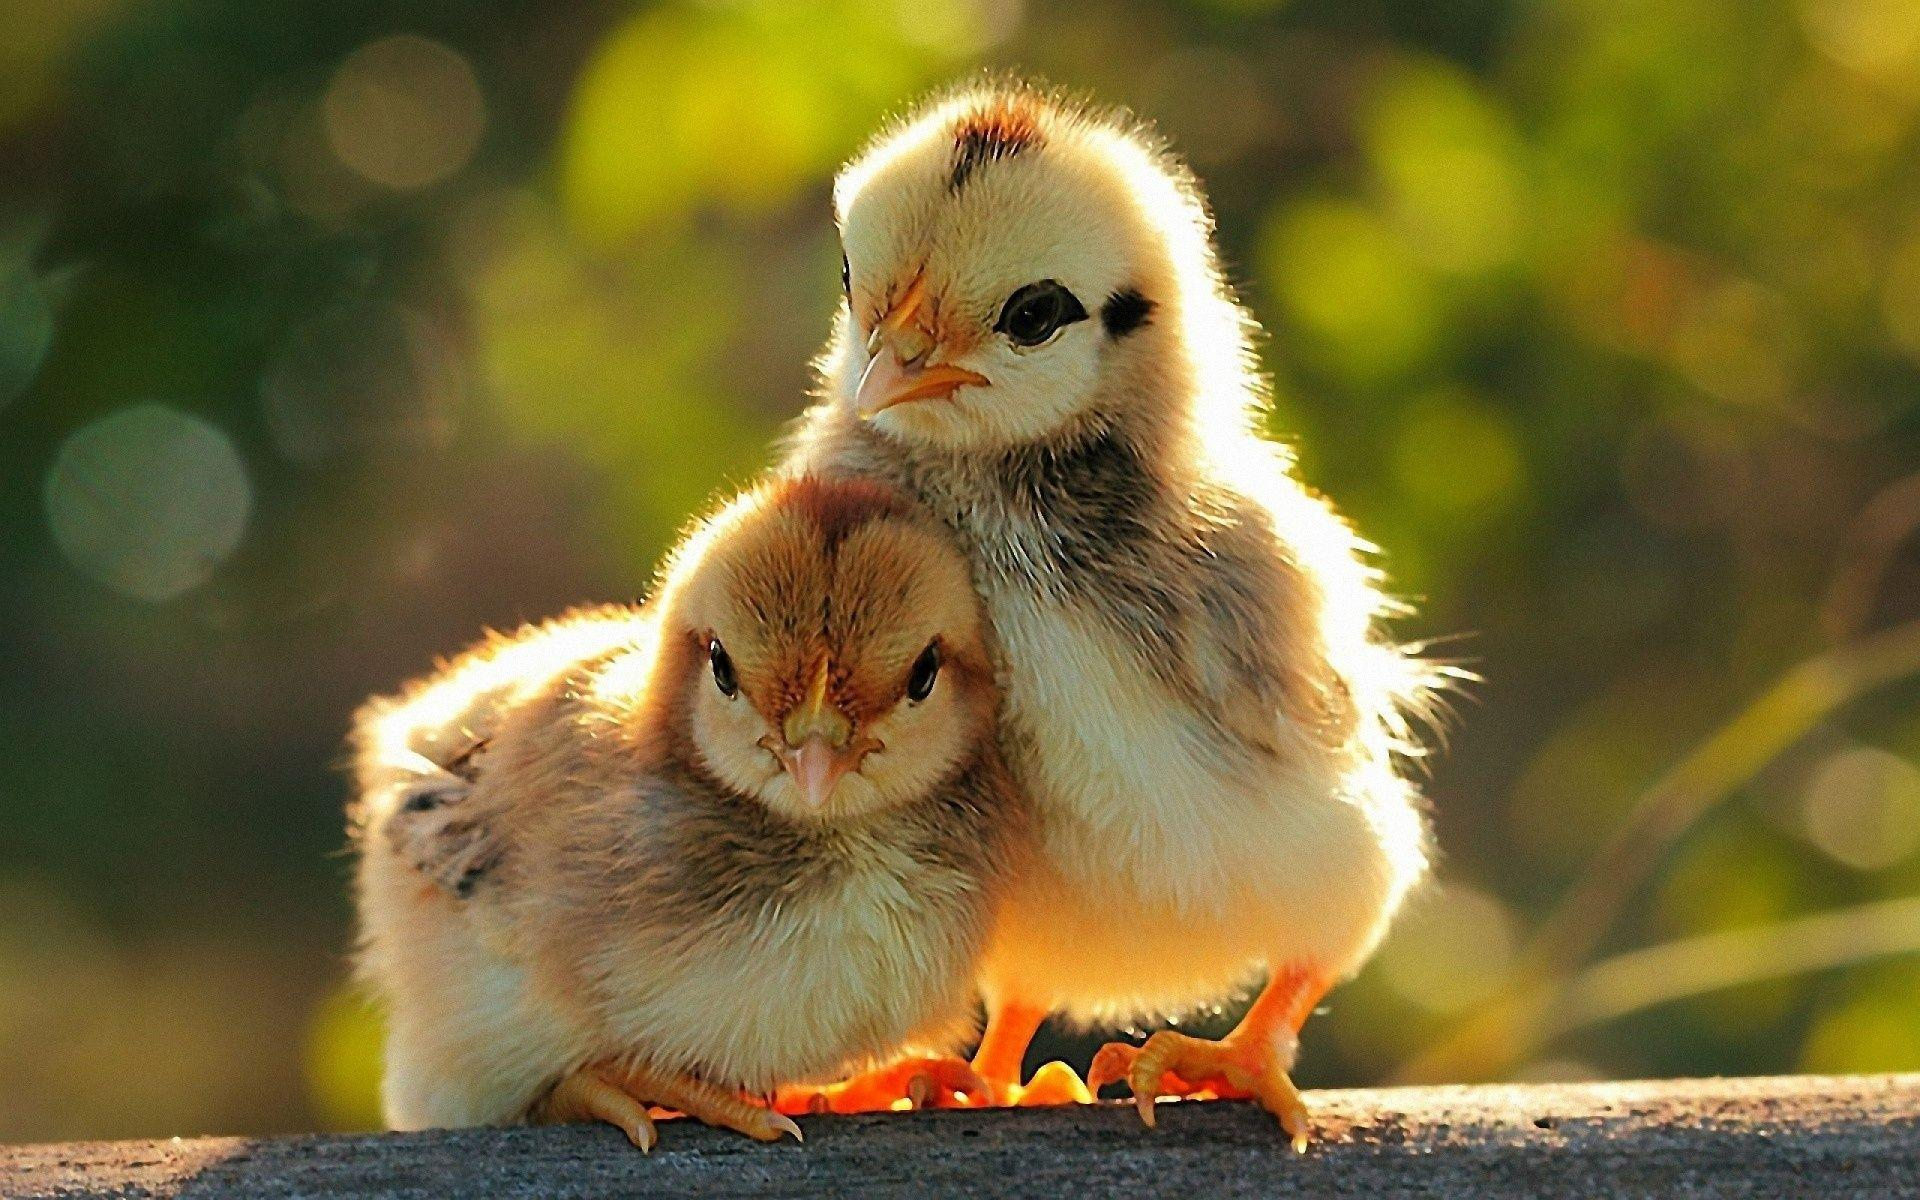 Birds Chicken HD Wallpapers Image And Photos Gallery Free Download